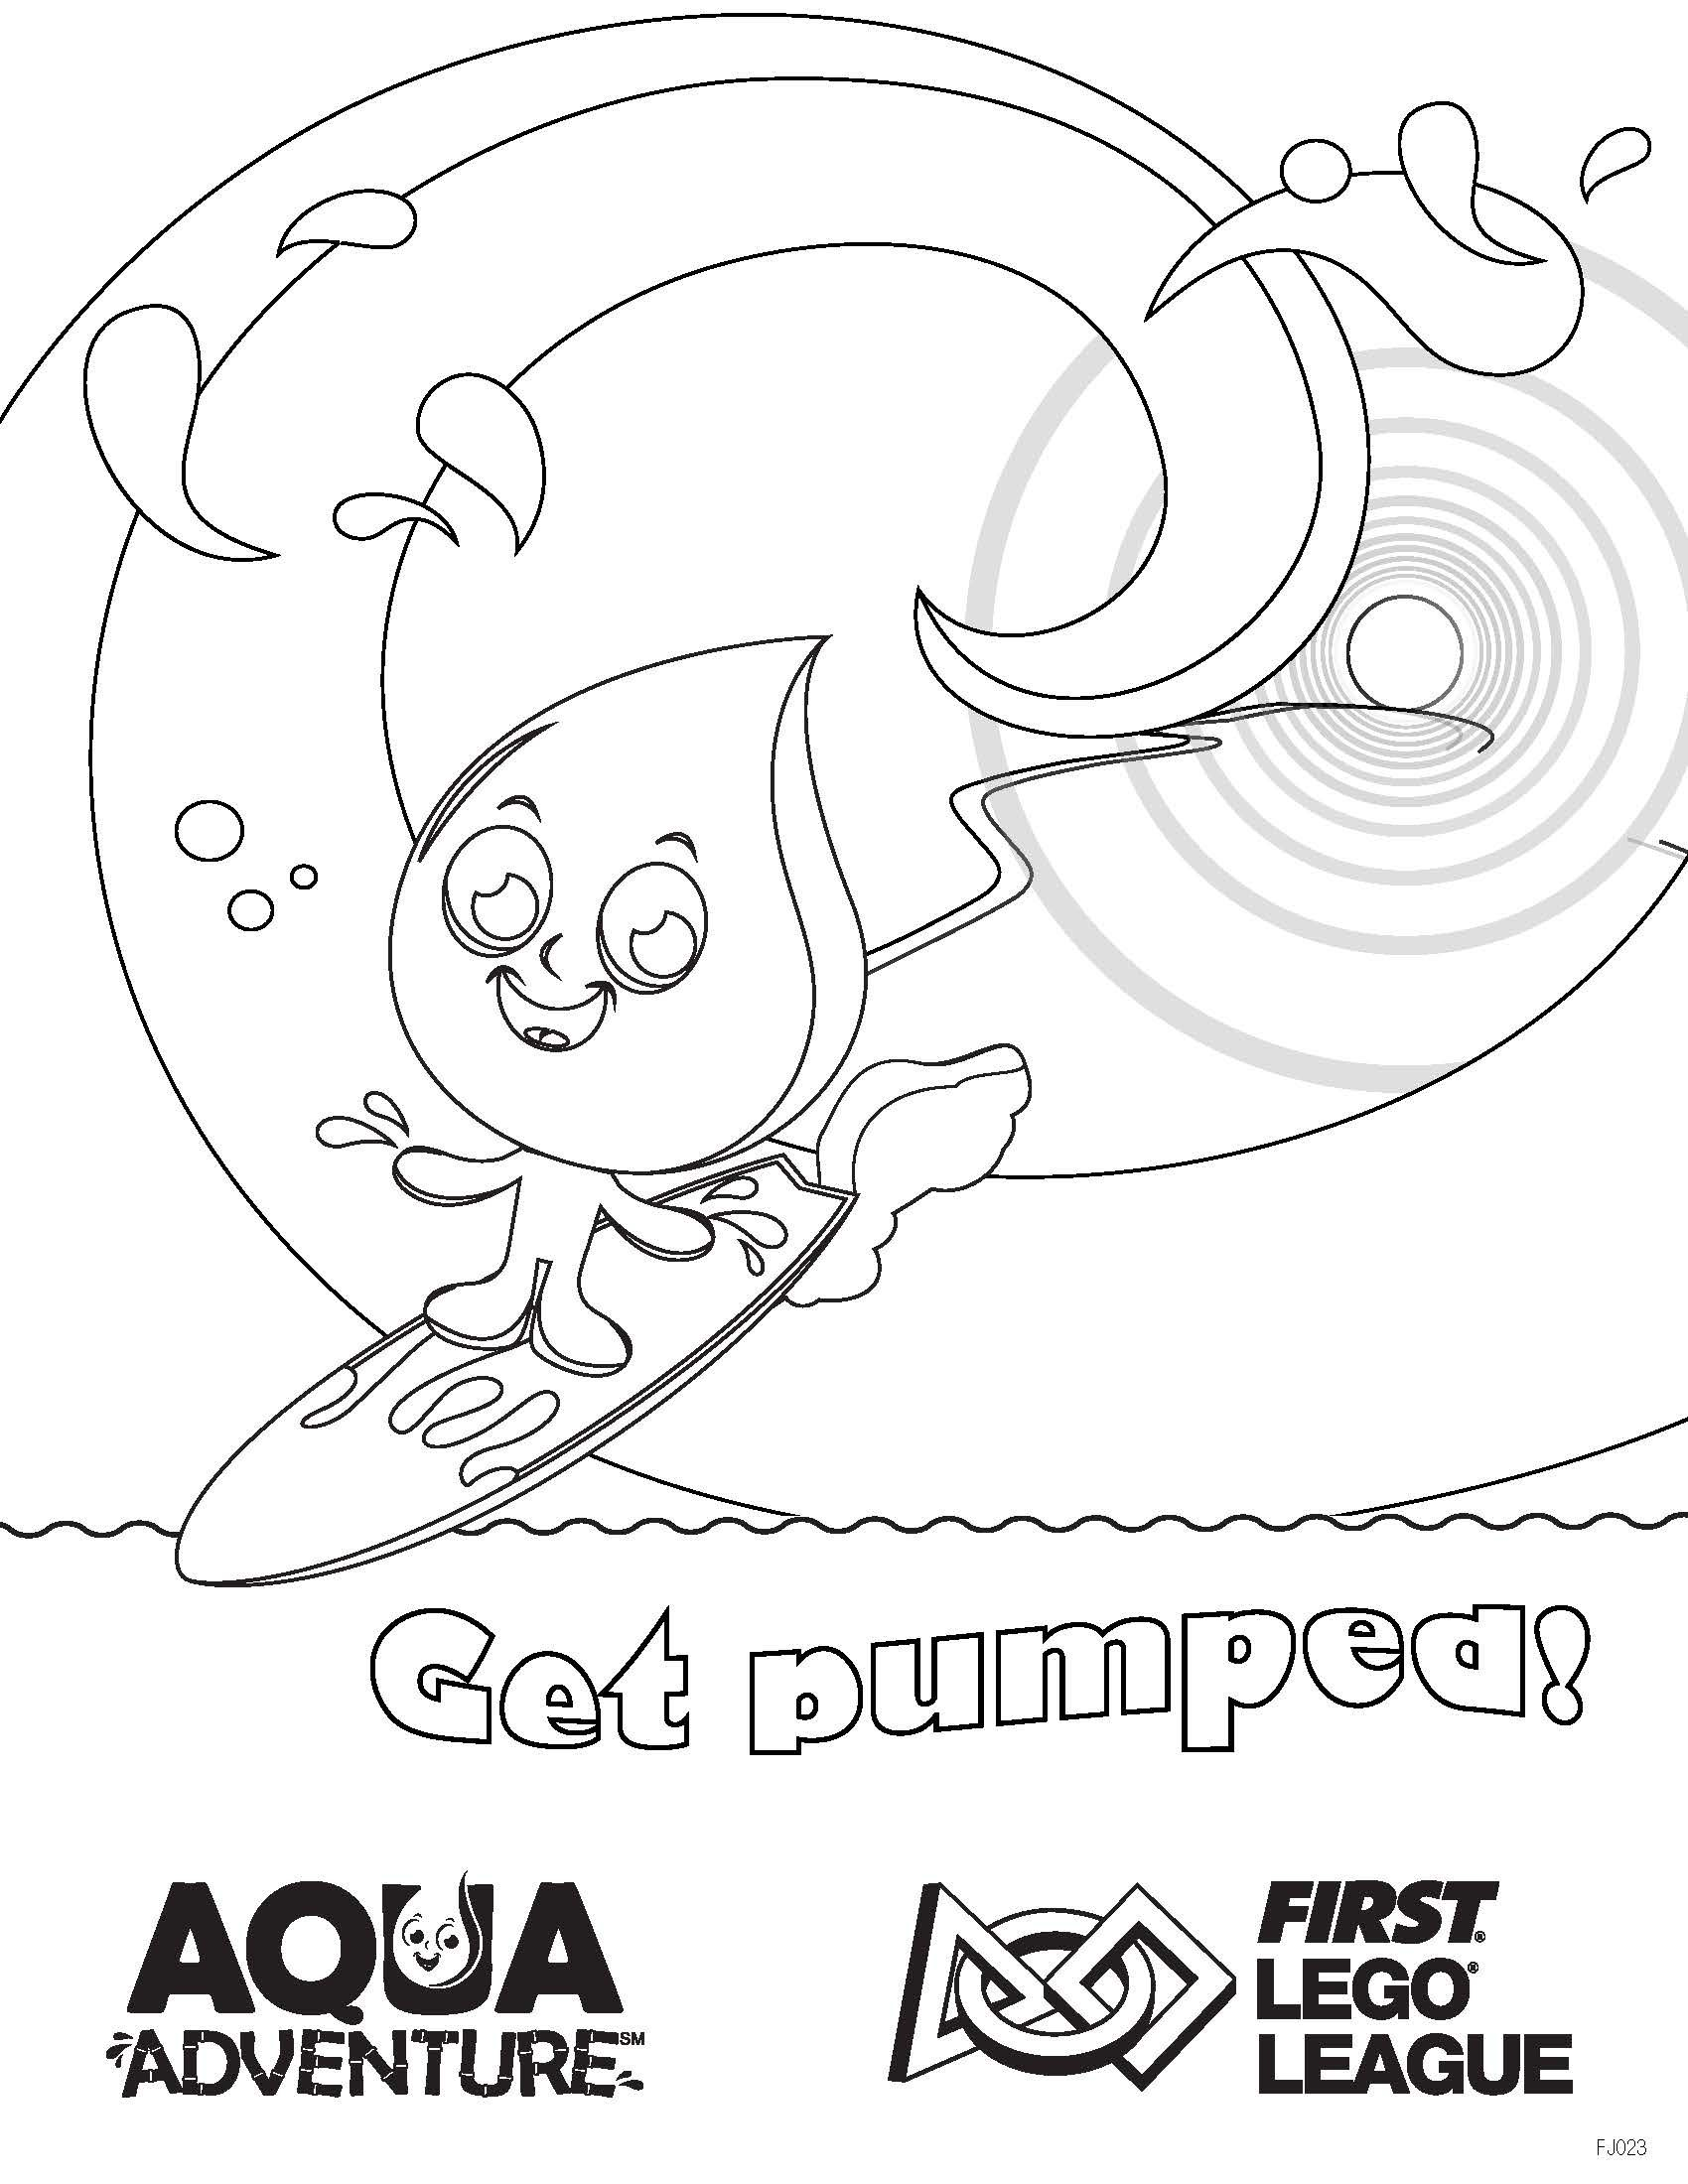 Download, #color, and print this AQUA ADVENTURE-themed